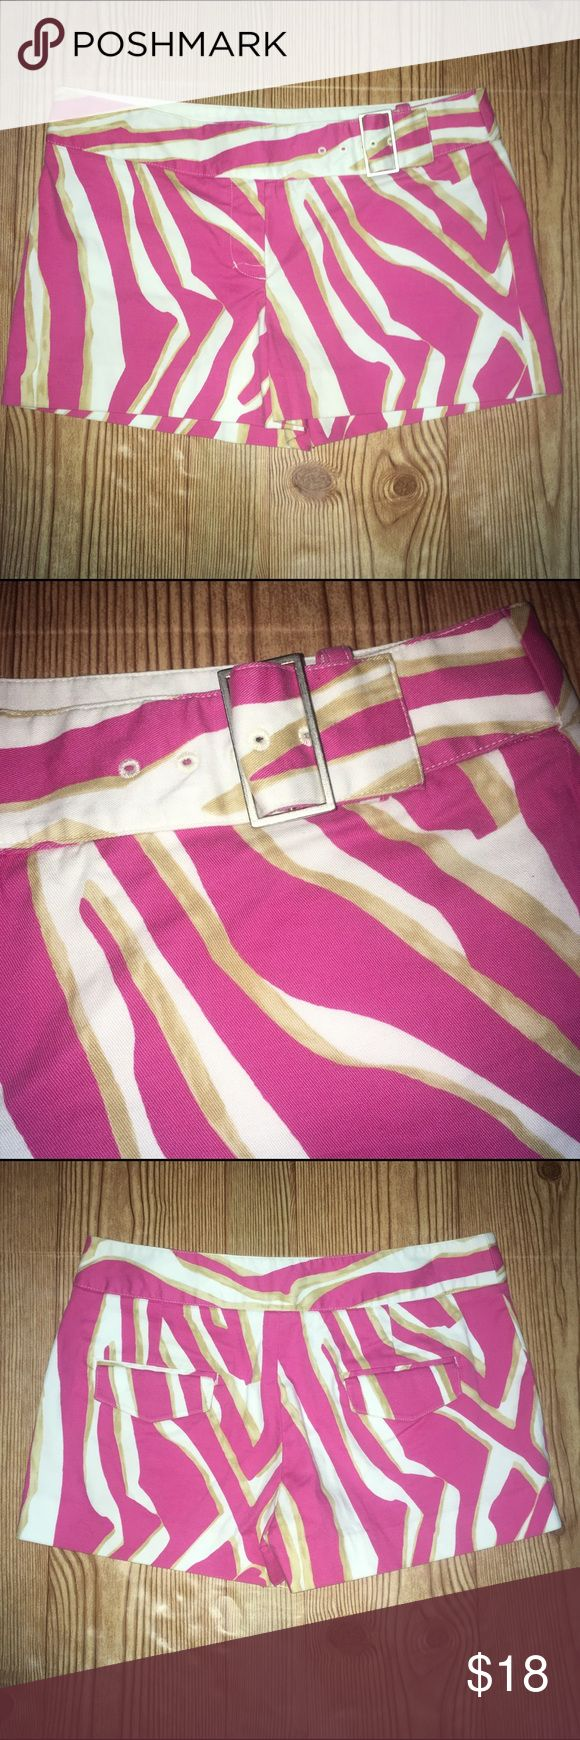 Express size 2 zebra print shorts with belt Express size 2 zebra print shorts with belt. Pink, gold and white colored print. Has belt attached to the waist. 96% cotton and 4% spandex. Measurements in pictures. No trades, offers welcome! Express Shorts